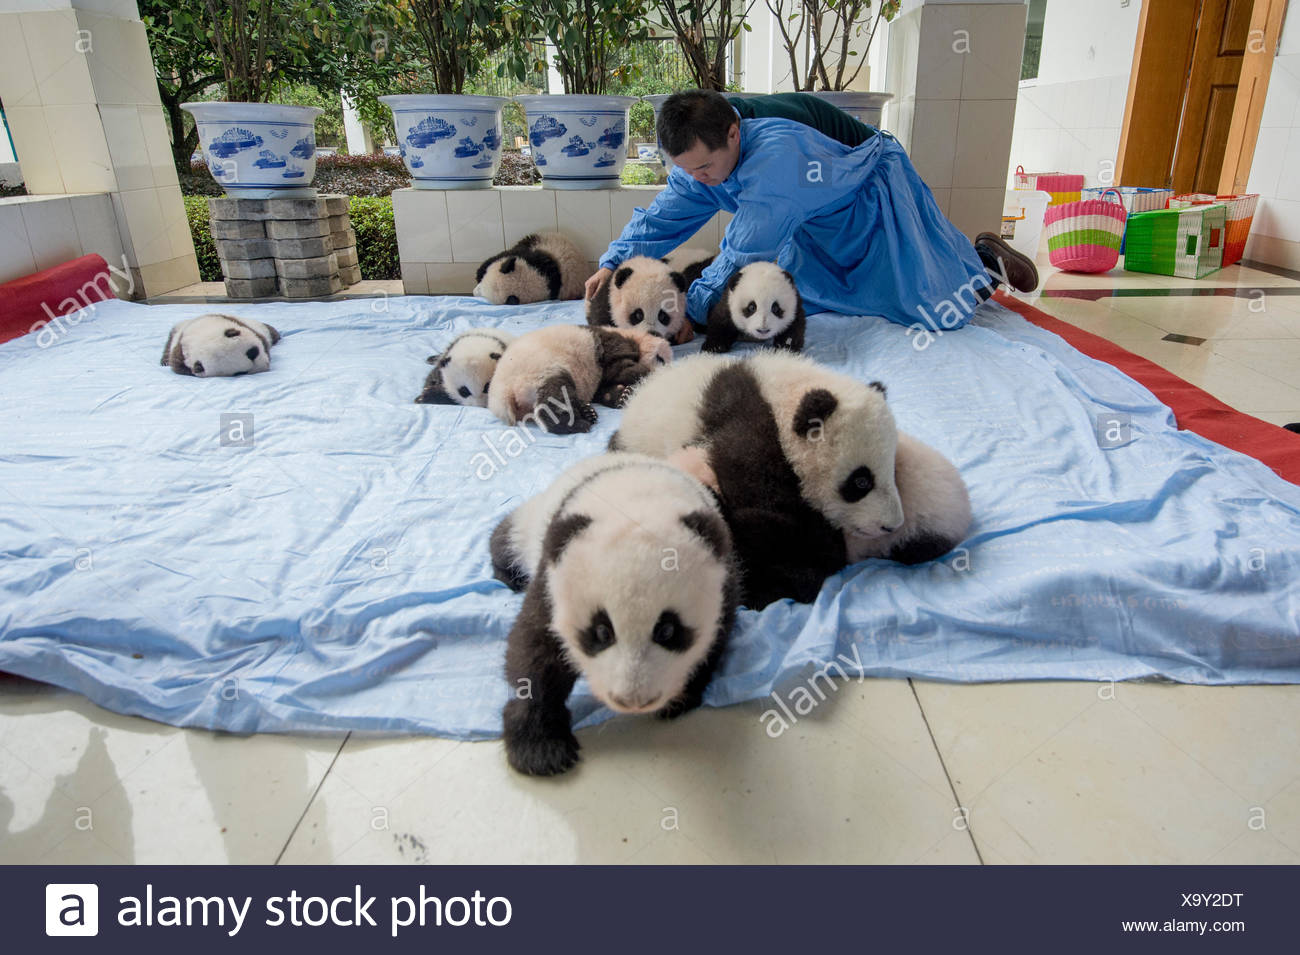 Baby captive-bred giant pandas and a handler on a blanket at the Bifengxia Panda Base giant panda breeding center. - Stock Image